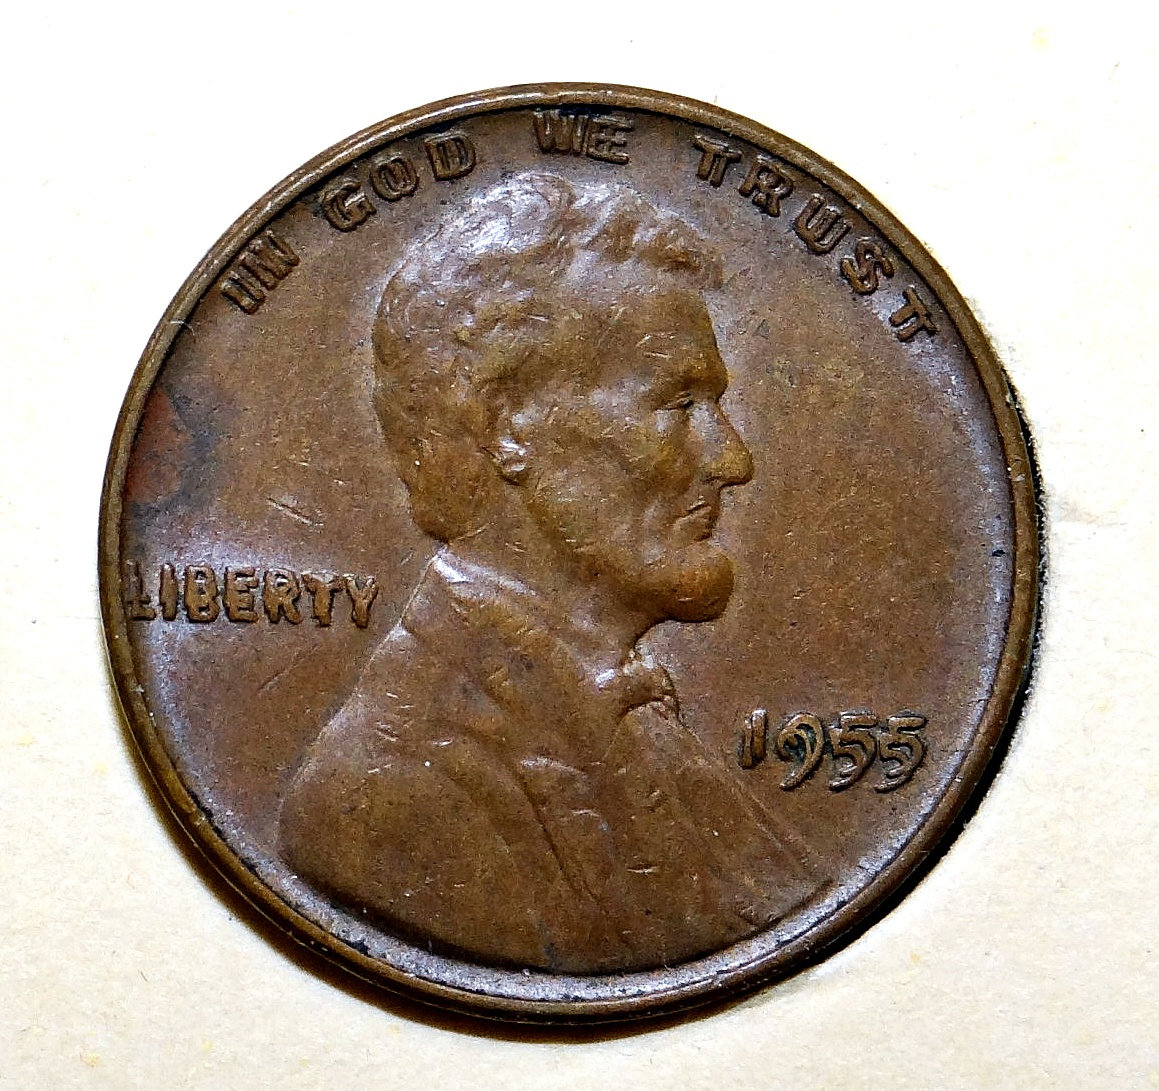 how to tell if a 1955 penny is double die